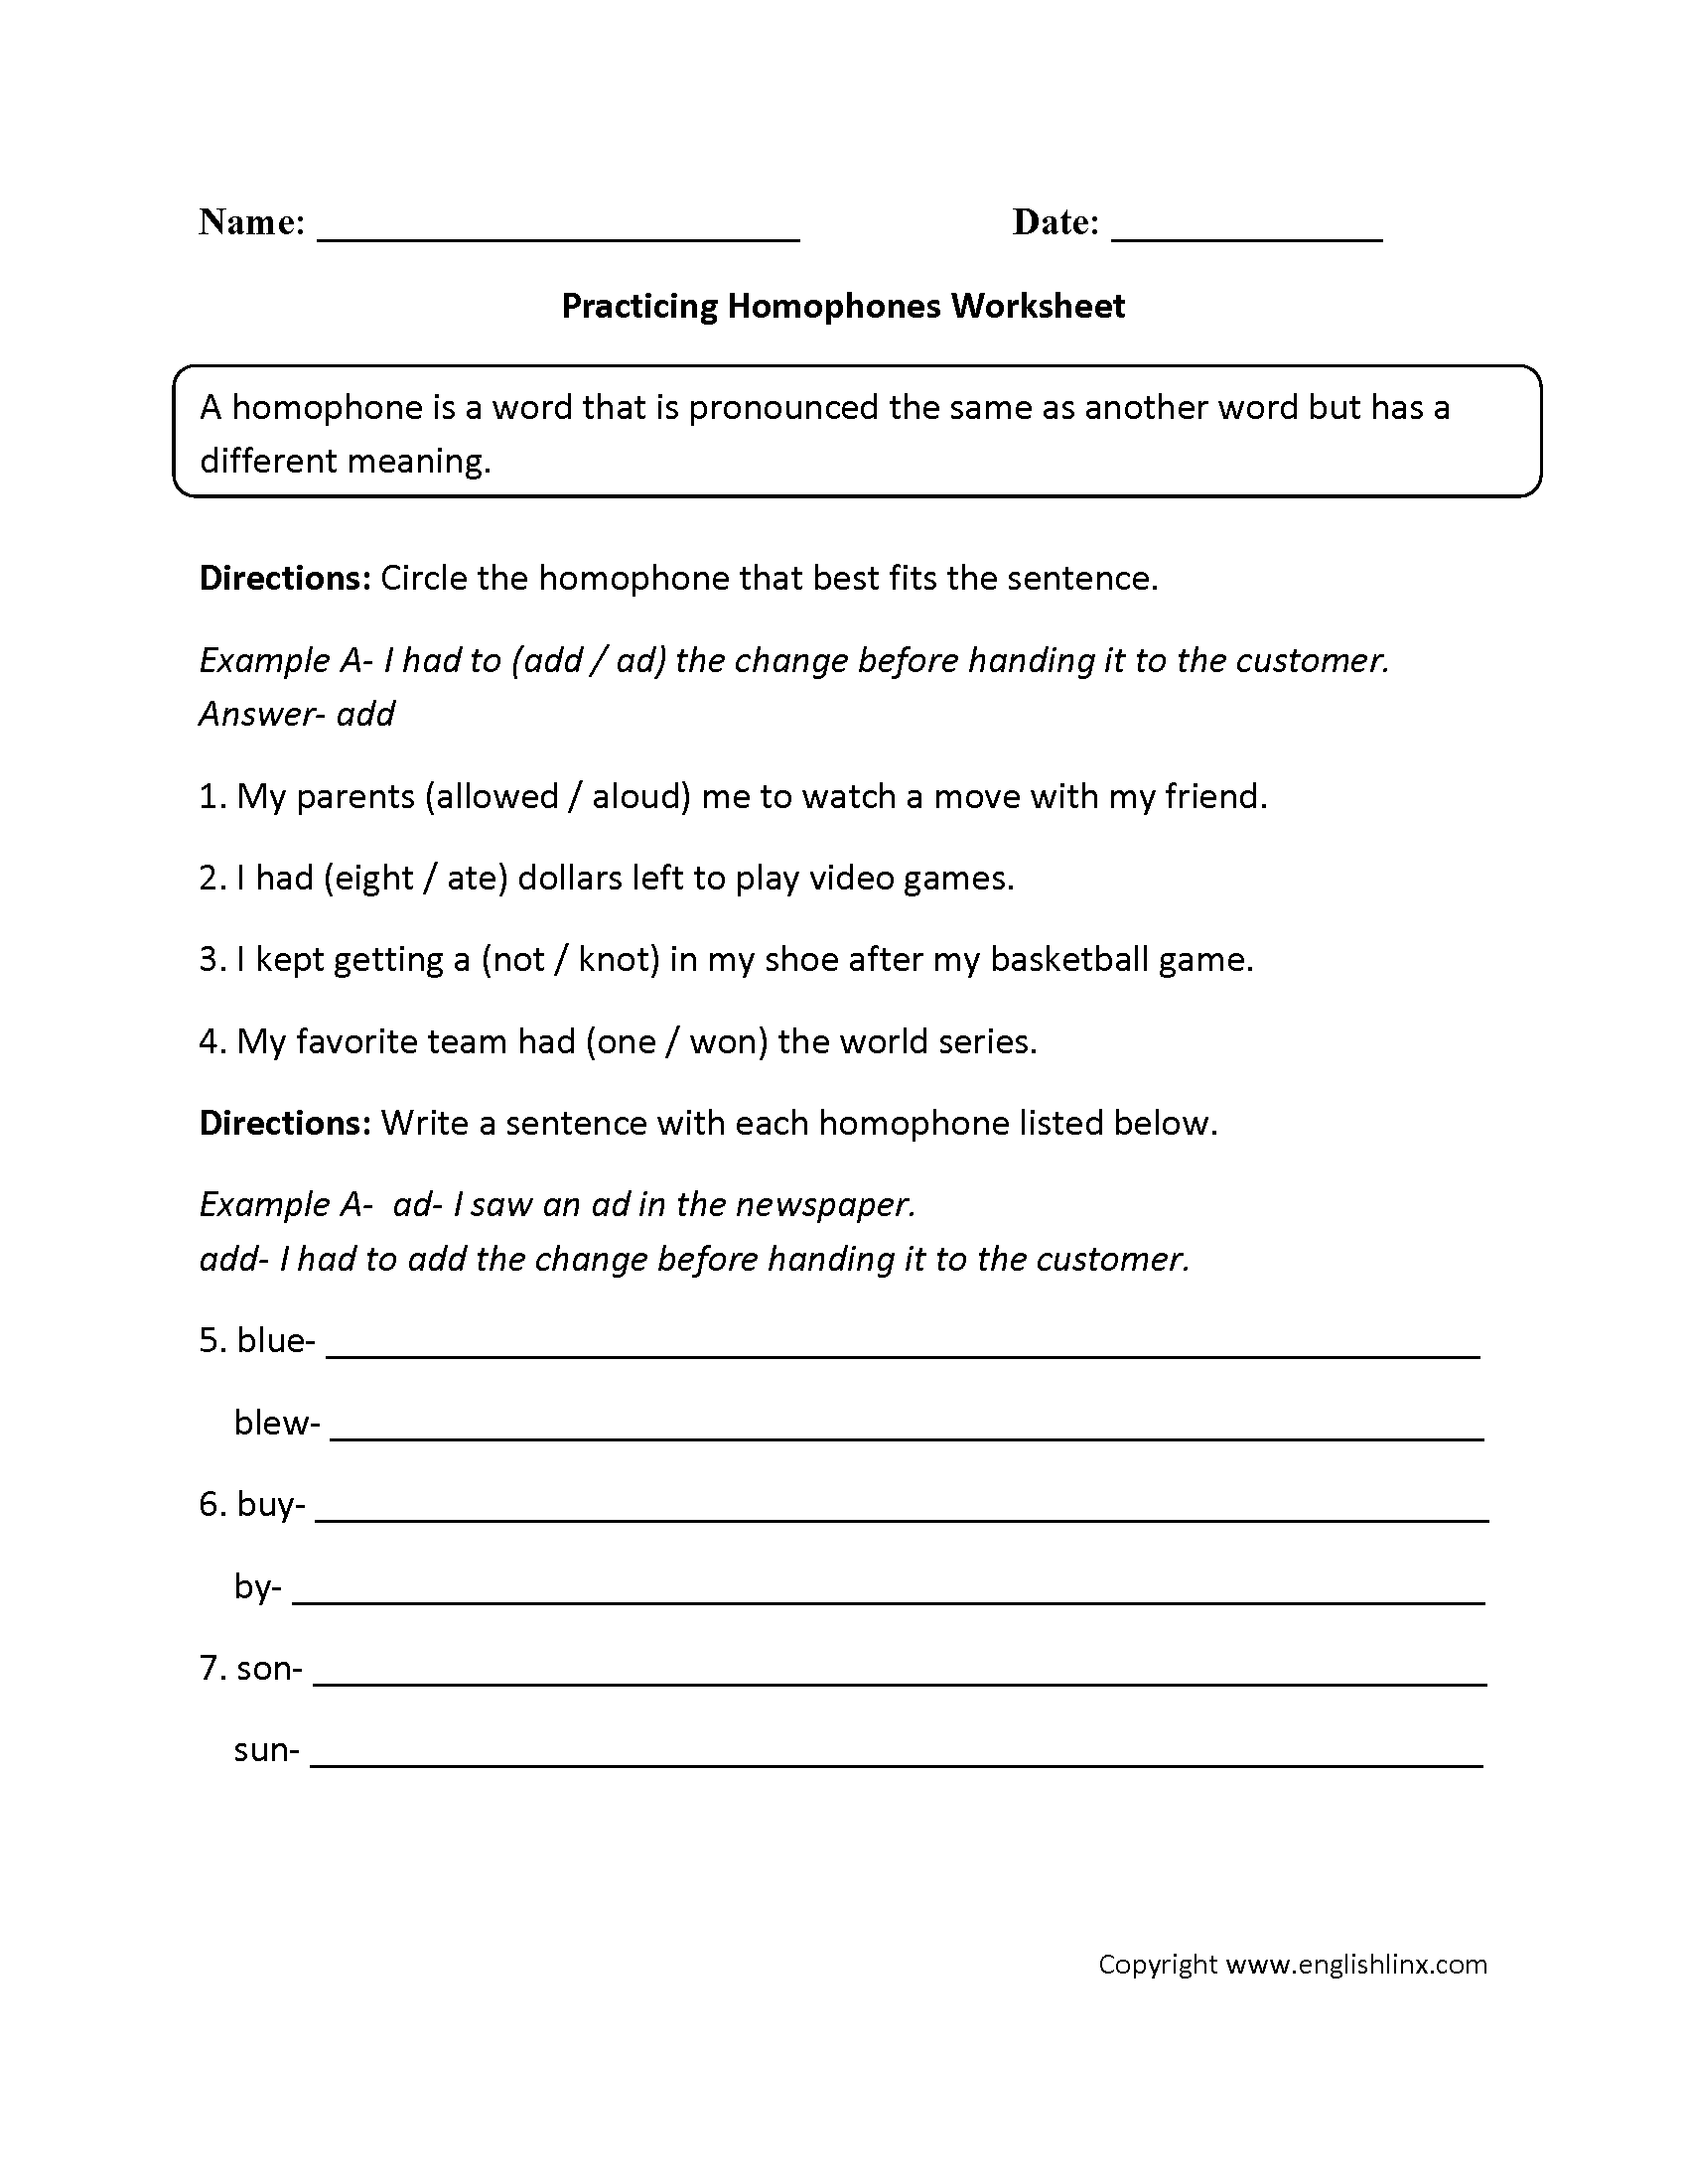 Worksheets Homonym Worksheets vocabulary worksheets homophone intermediate worksheets